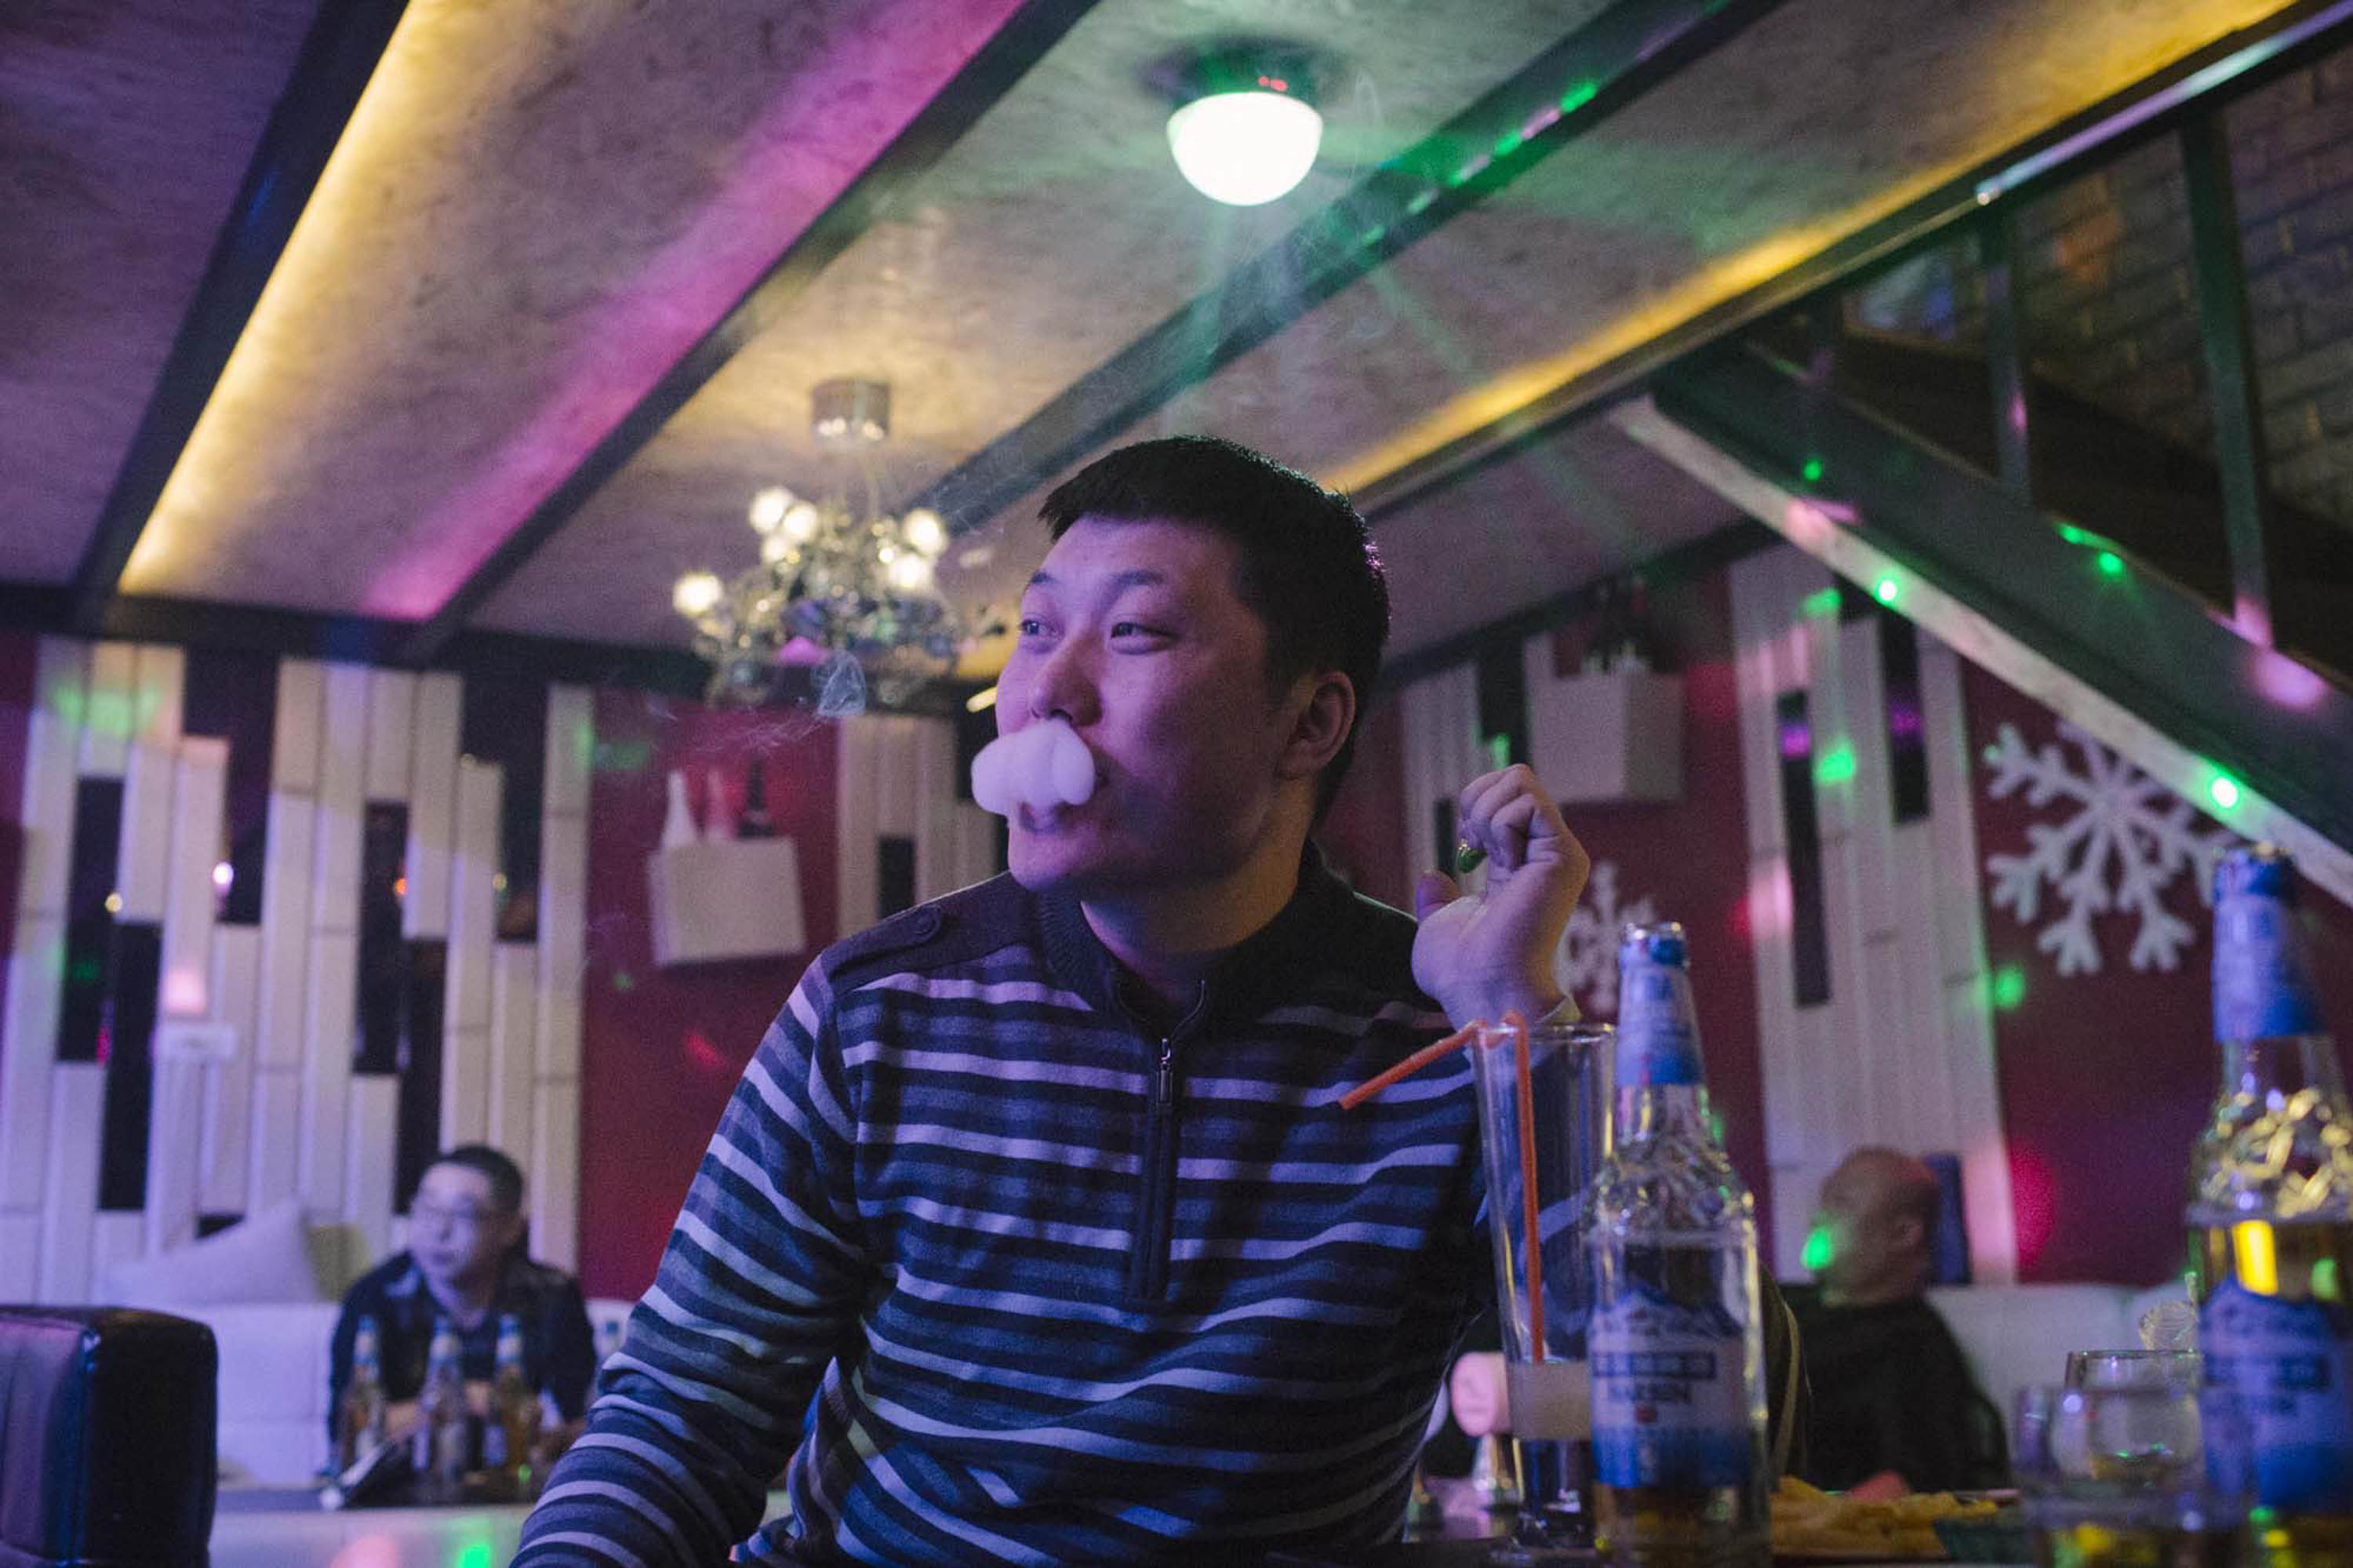 Xia Yan is treated to drinks by friends at one of Shuangyashan's bars, Jan. 16, 2016. Both Xia's income and circle of friends have diminished drastically since he lost his lucrative job procuring mining machinery. Zhou Pinglang/Sixth Tone